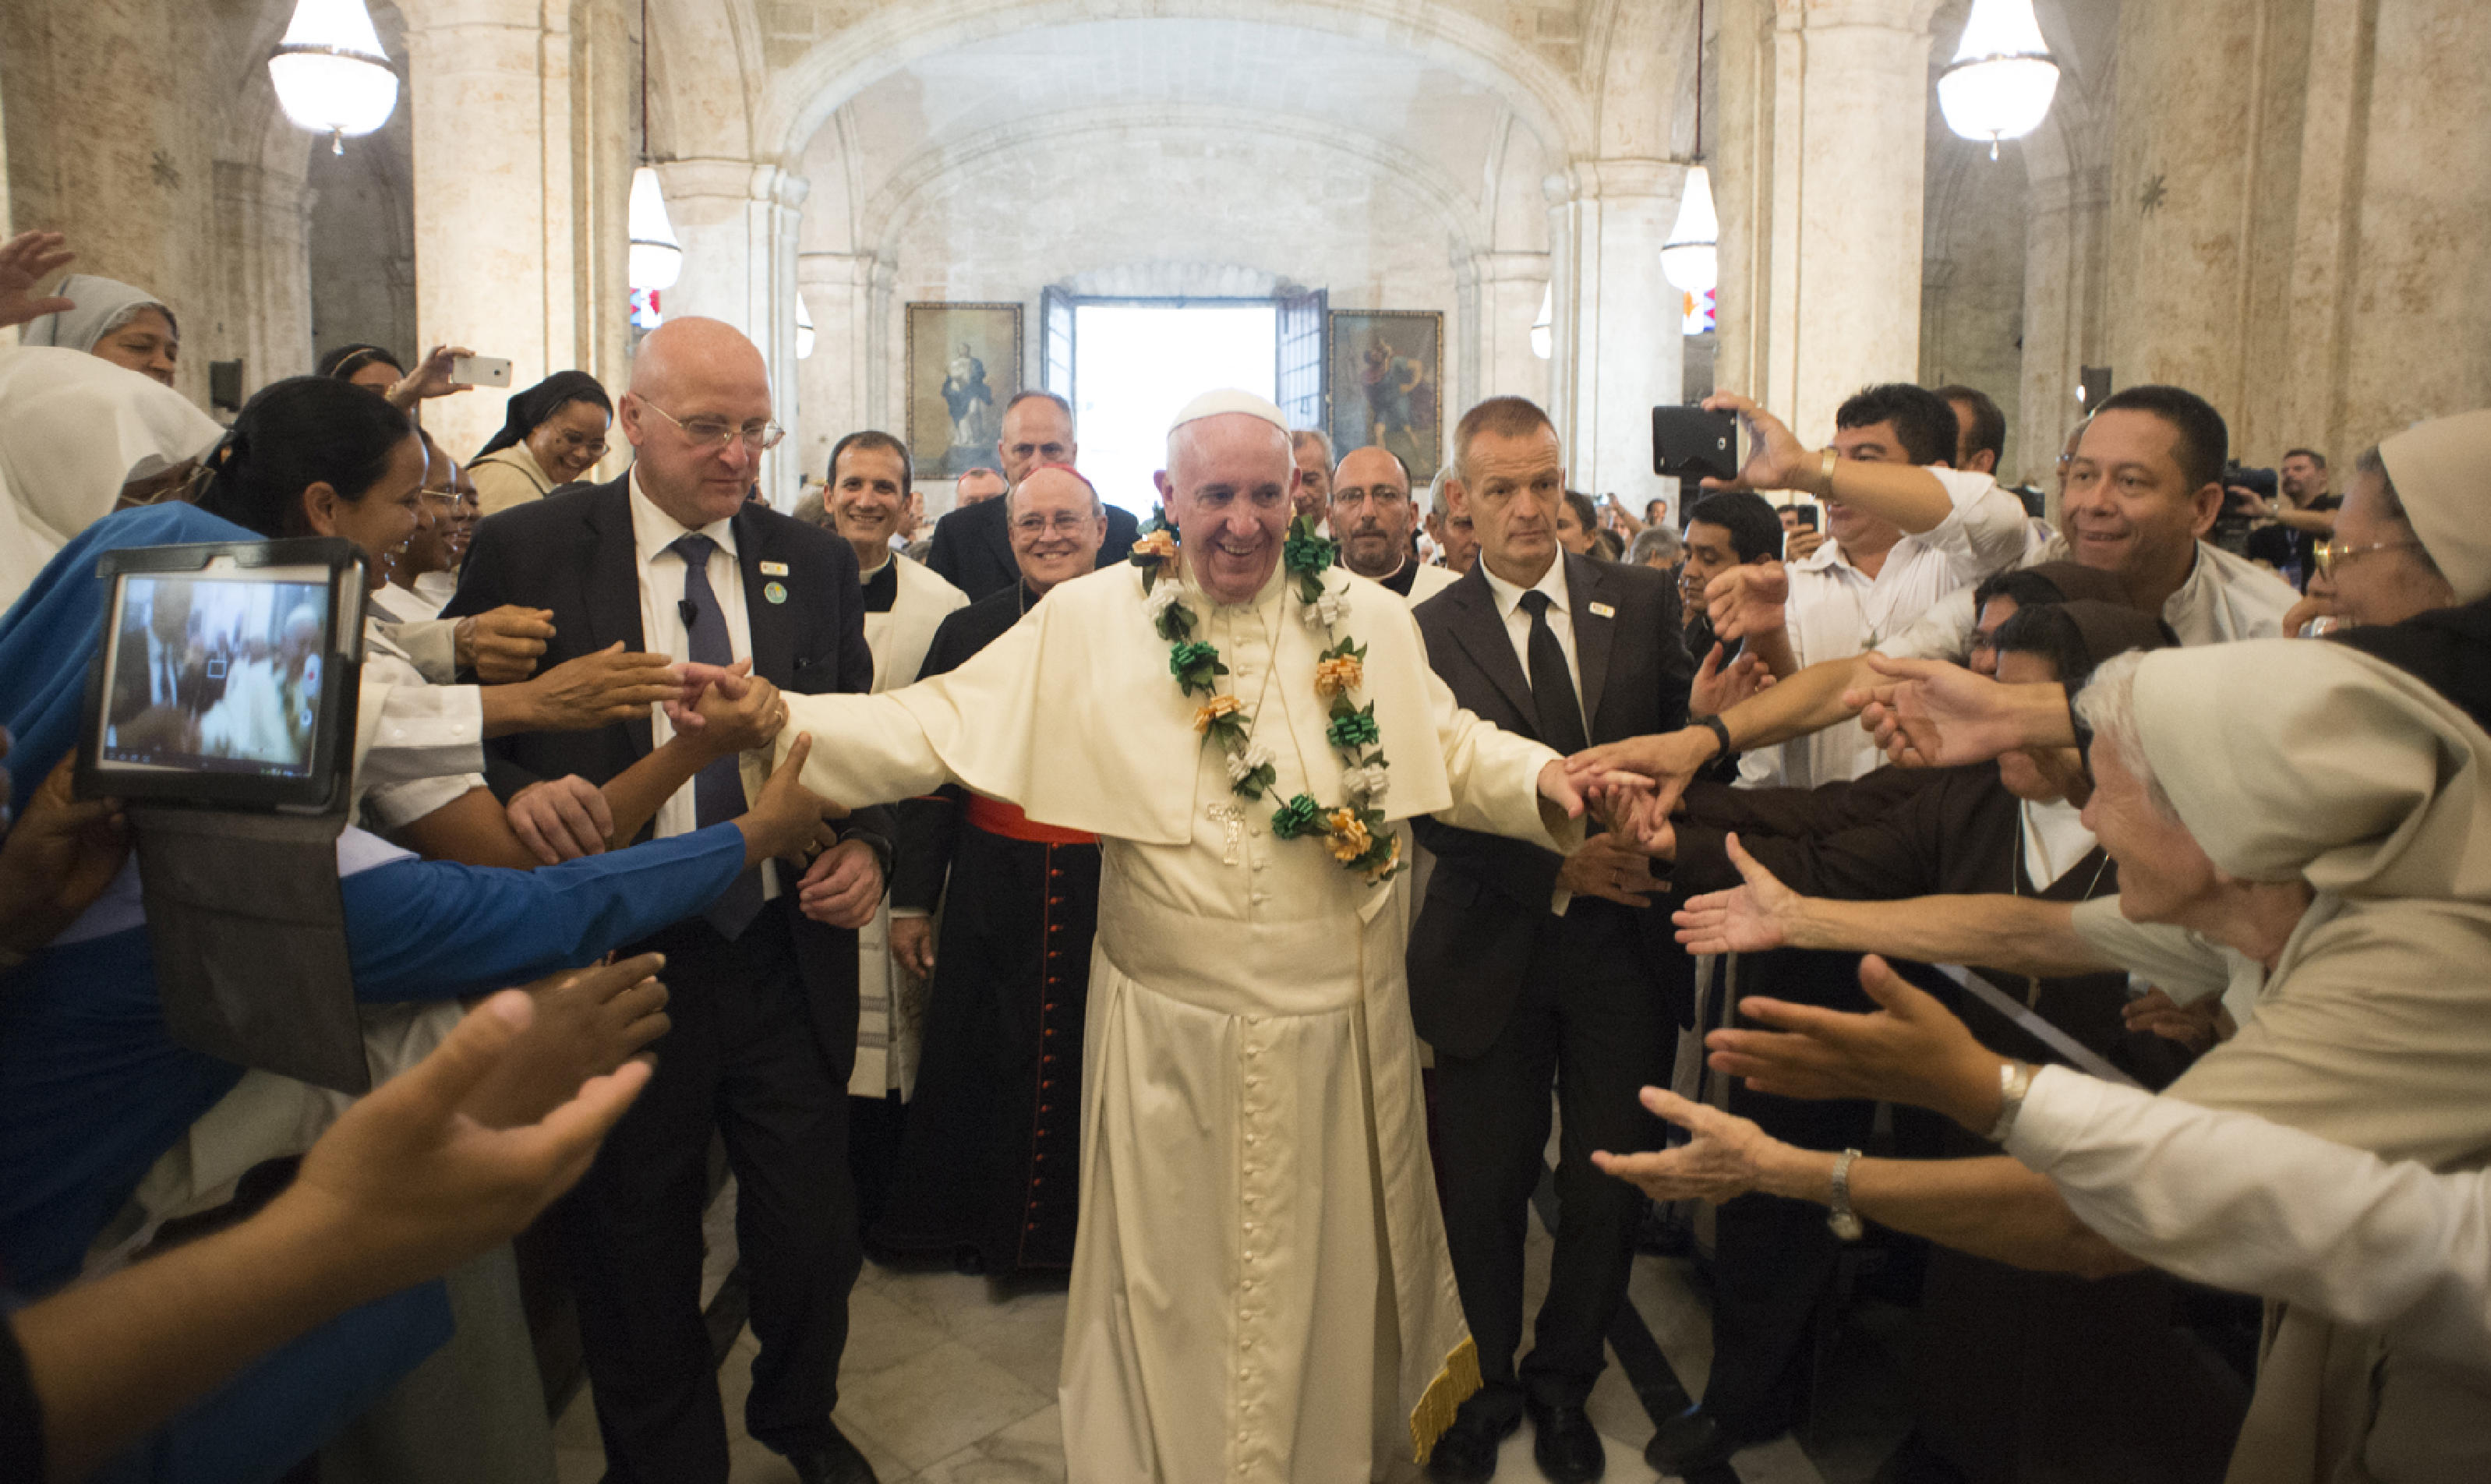 Pope Francis' visit at the Havana Cathedral